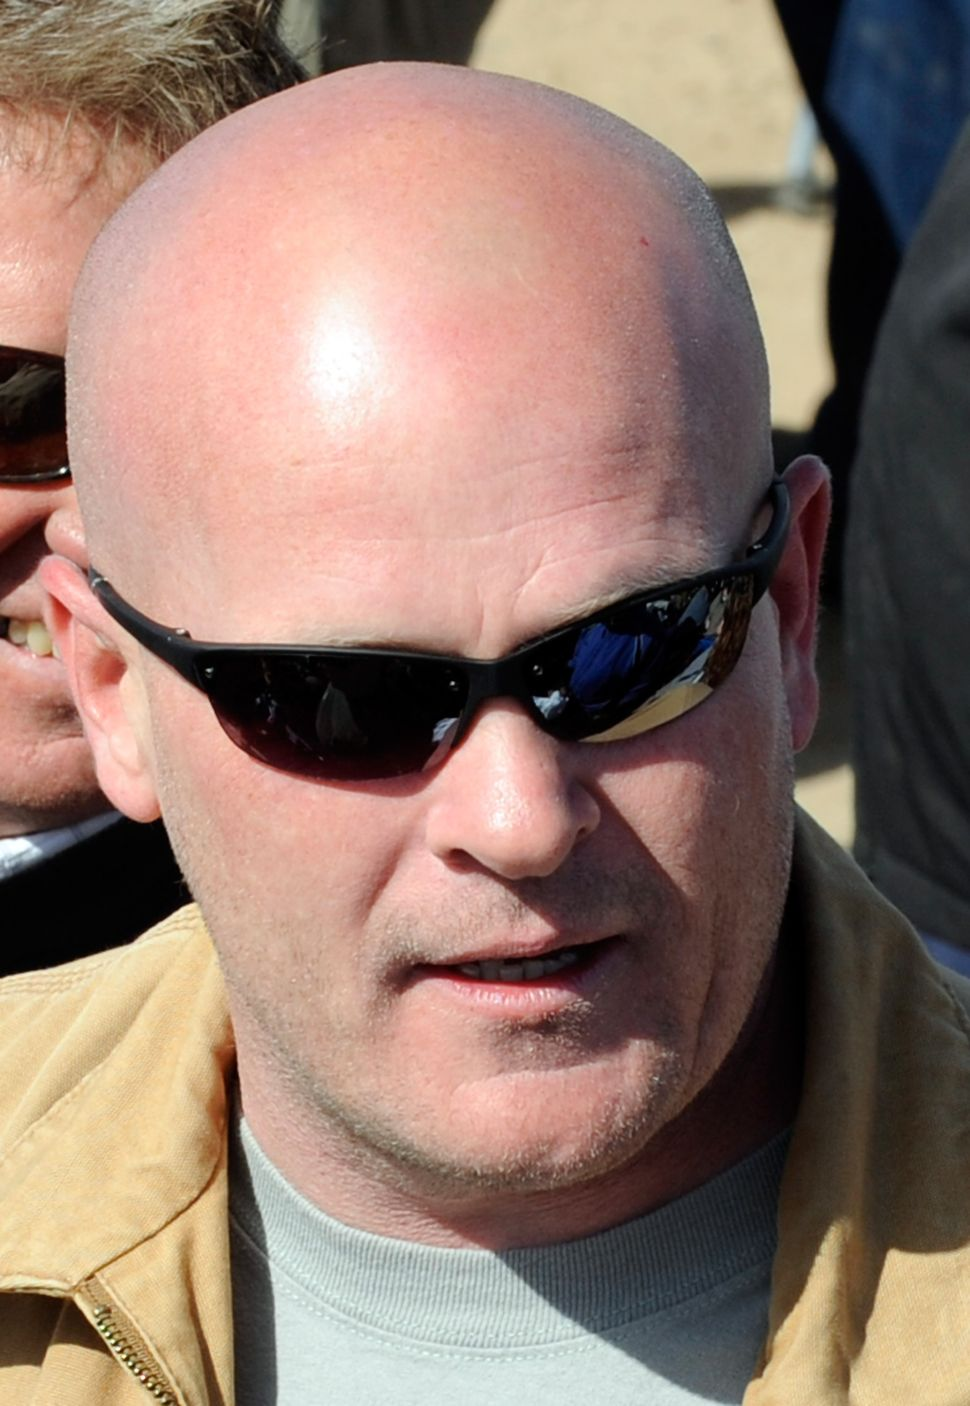 'Joe The Plumber's' Spokesman Explains His Holocaust Theories: 'Joe Is A Student Of History'